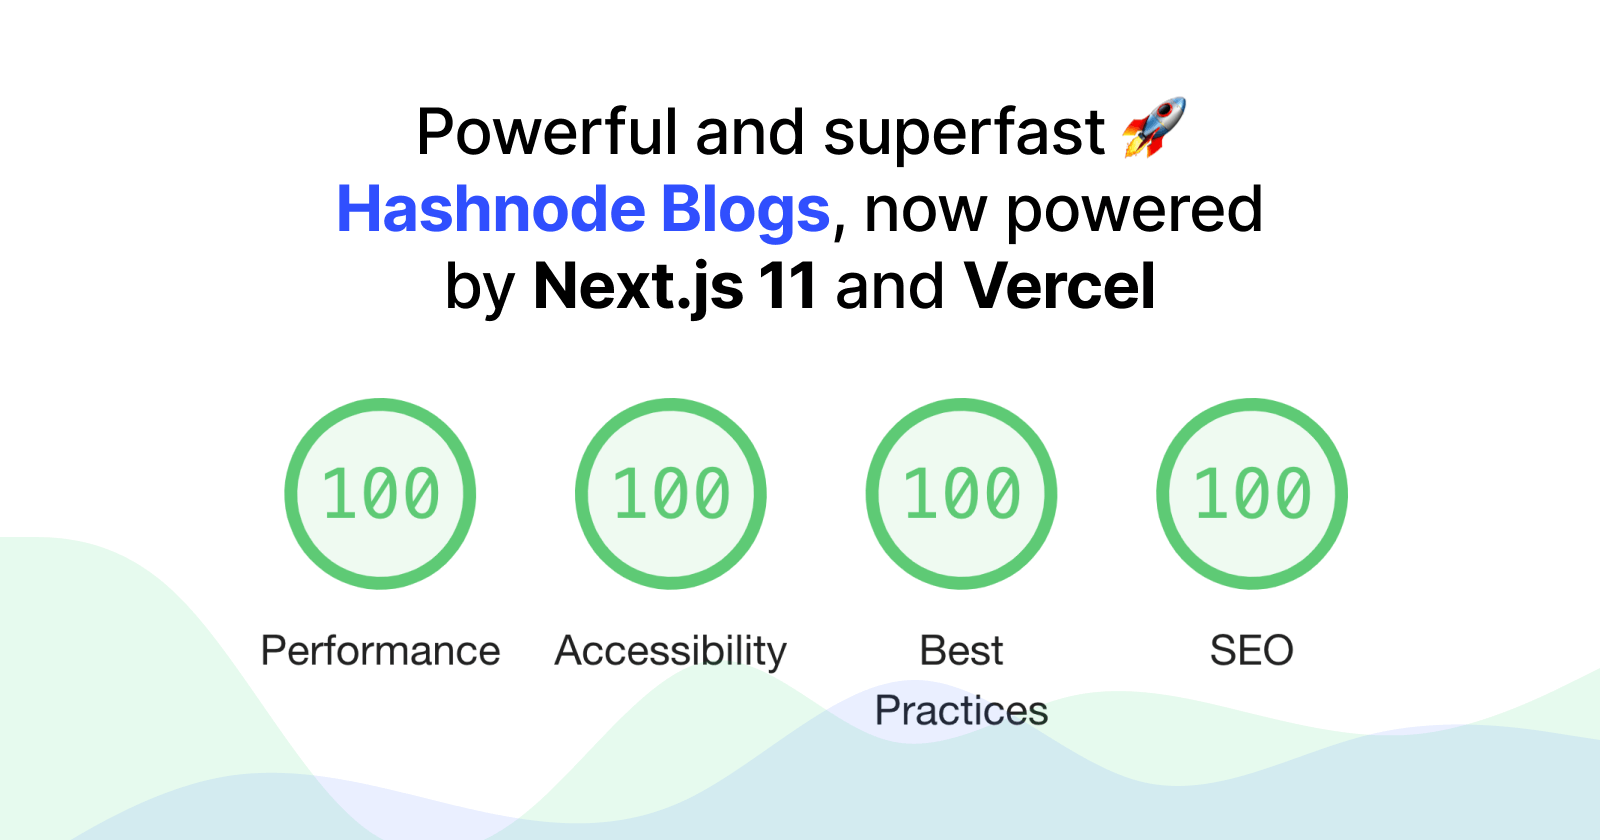 Powerful and superfast Hashnode Blogs, now powered by Next.js 11 and Vercel 🚀